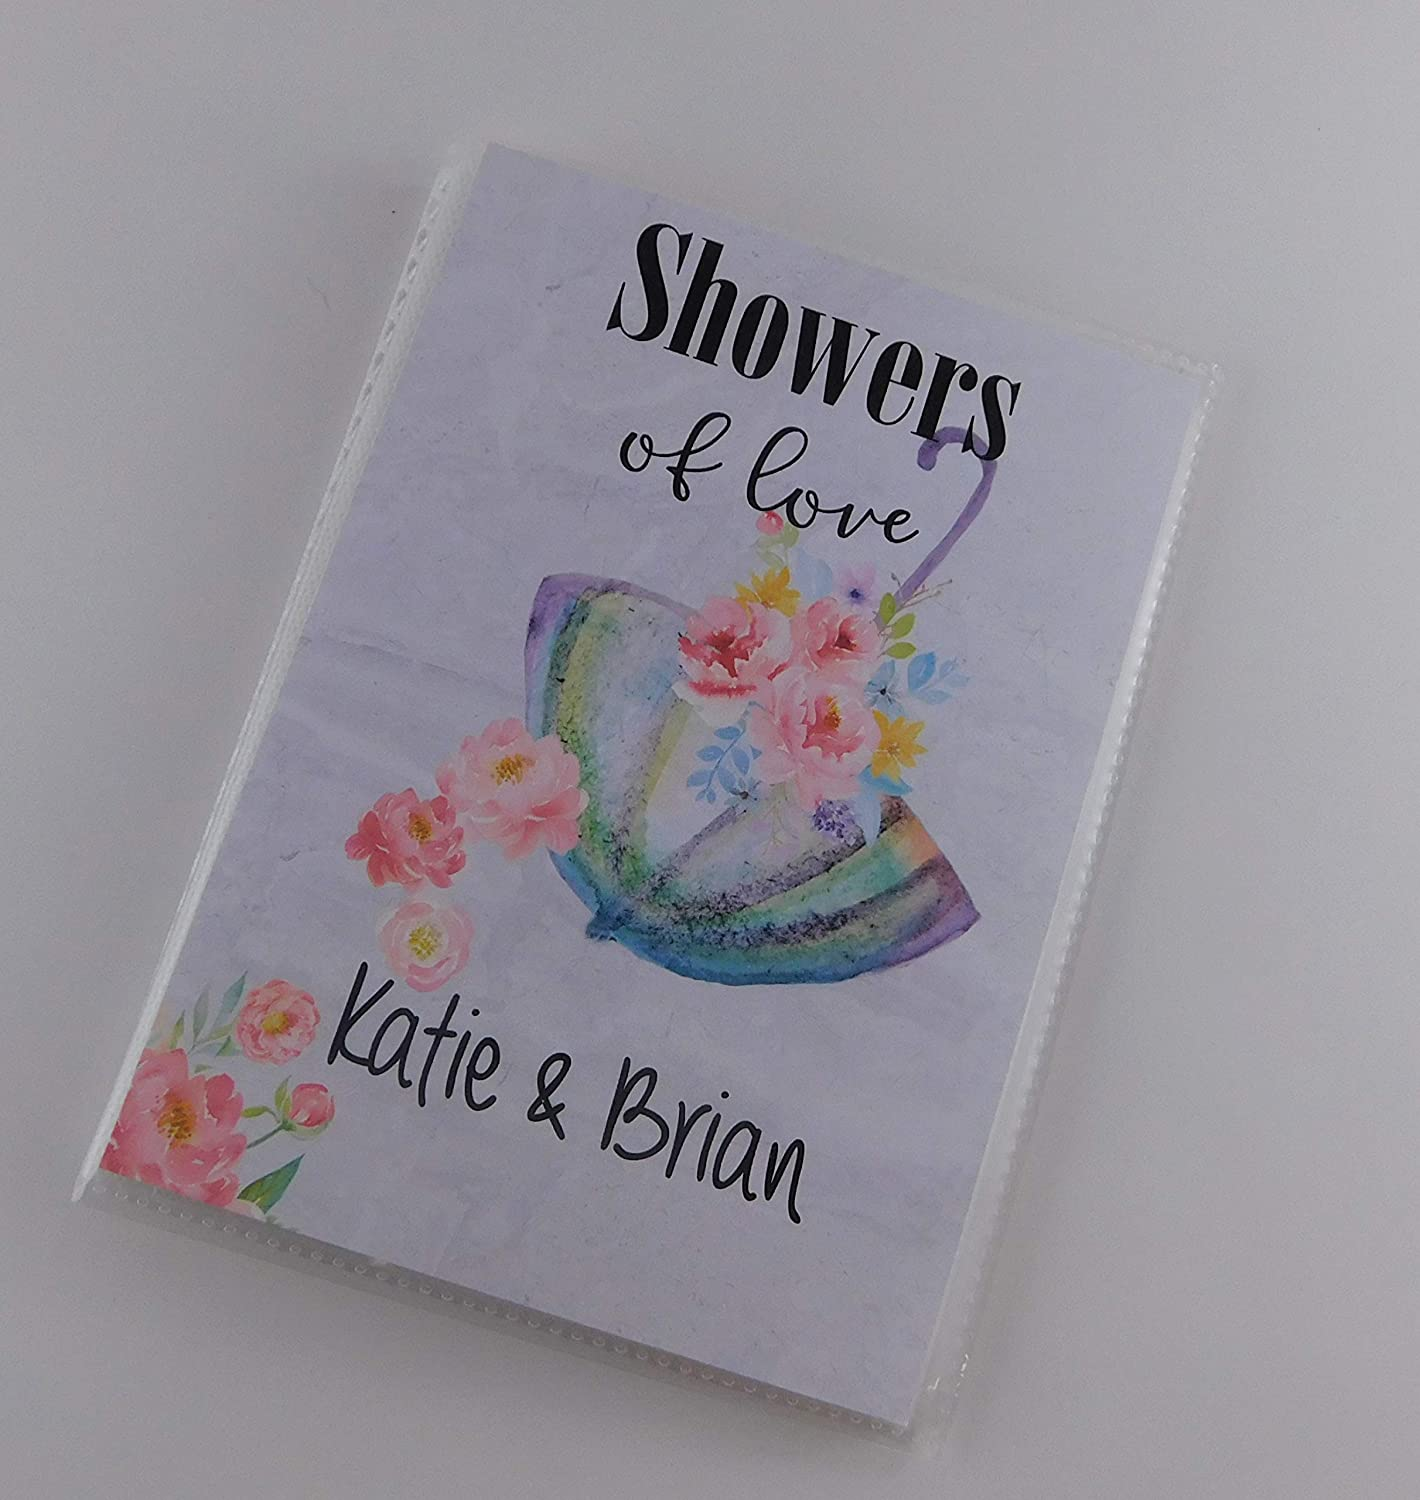 Bridal Shower Photo Album IA#006 Personalized Wedding Flowers Umbrella Baby Gift 4x6 or 5x7 Pictures